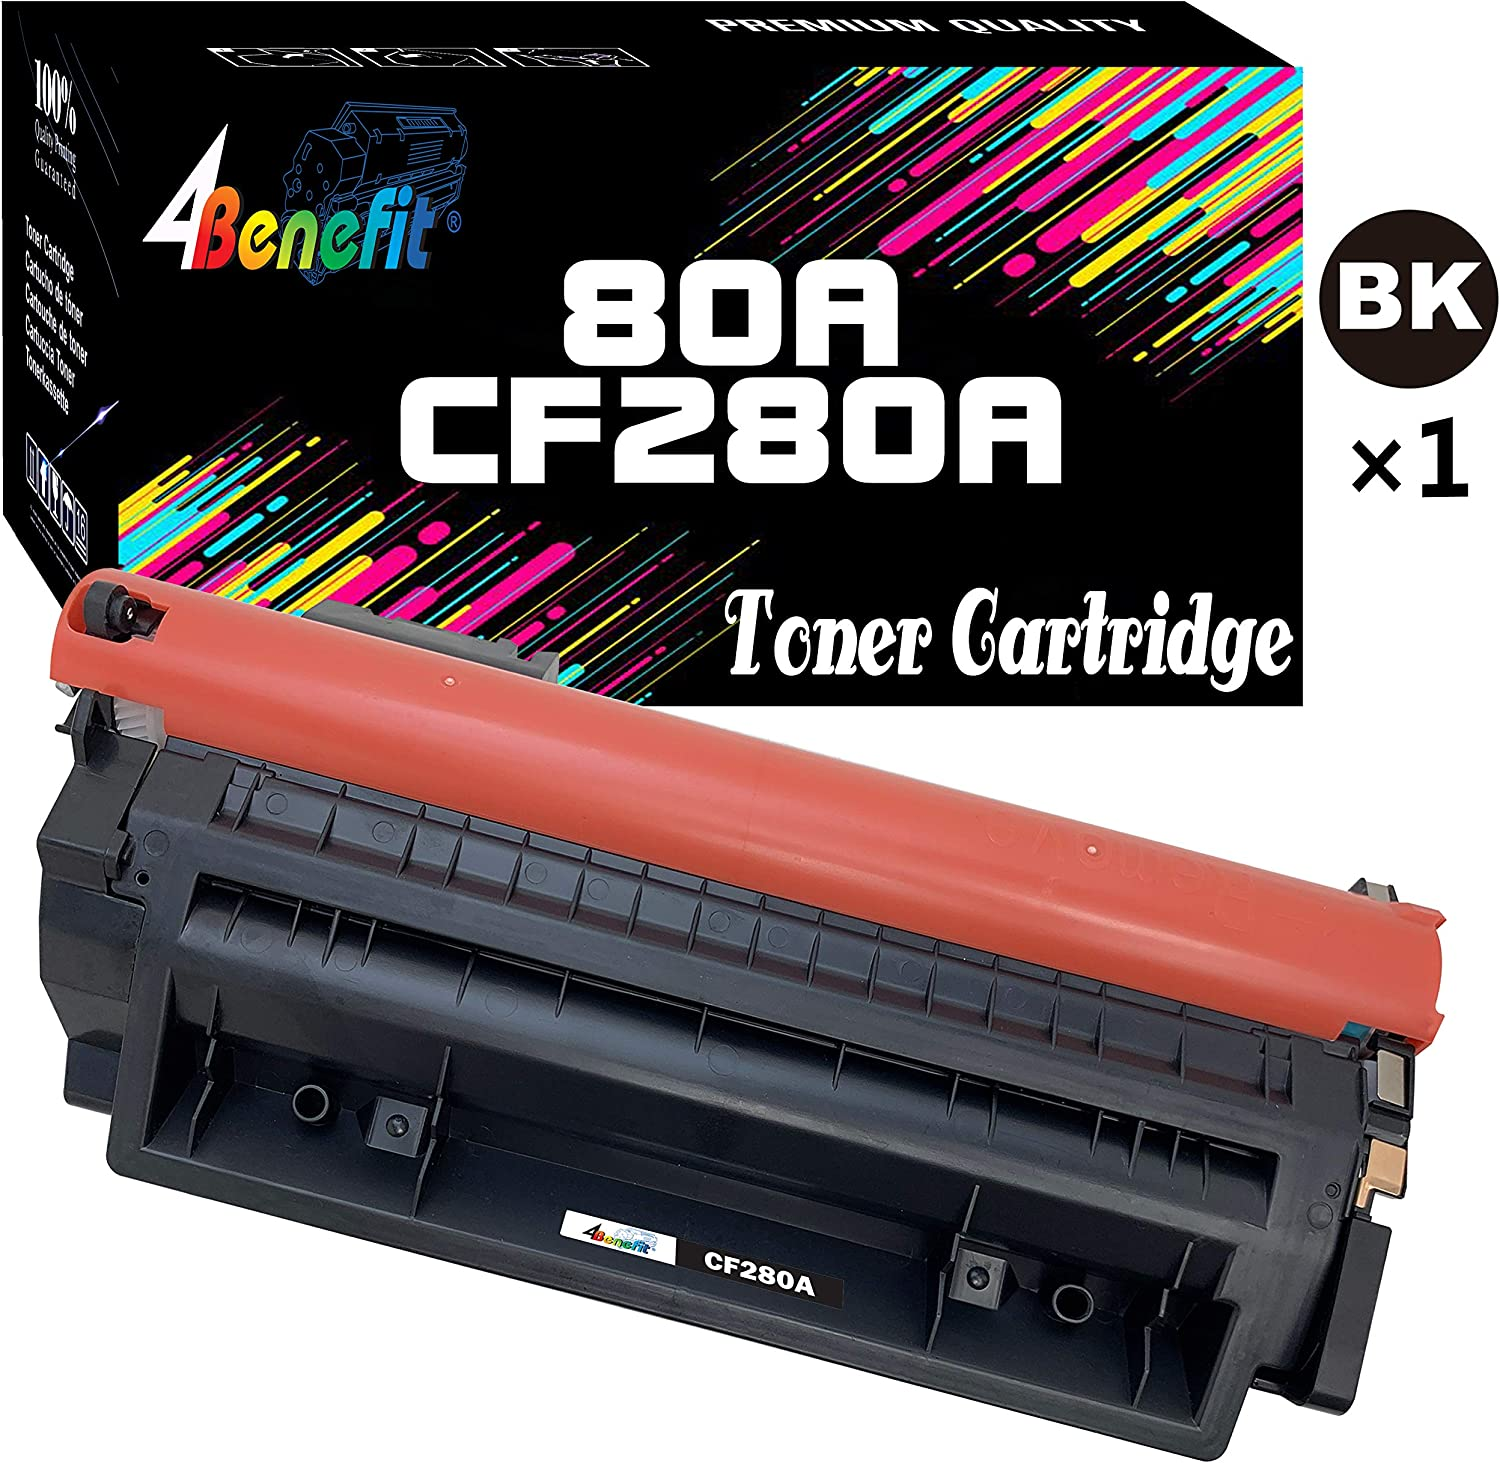 4Benefit Compatible Toner Cartridge Replacement for HP 80A CF280A 80X CF280X to Used for HP Laserjet Pro 400 MFP M425d M425dw M401n M401dw M401dne M401dn Printer (1-Pack, Black)